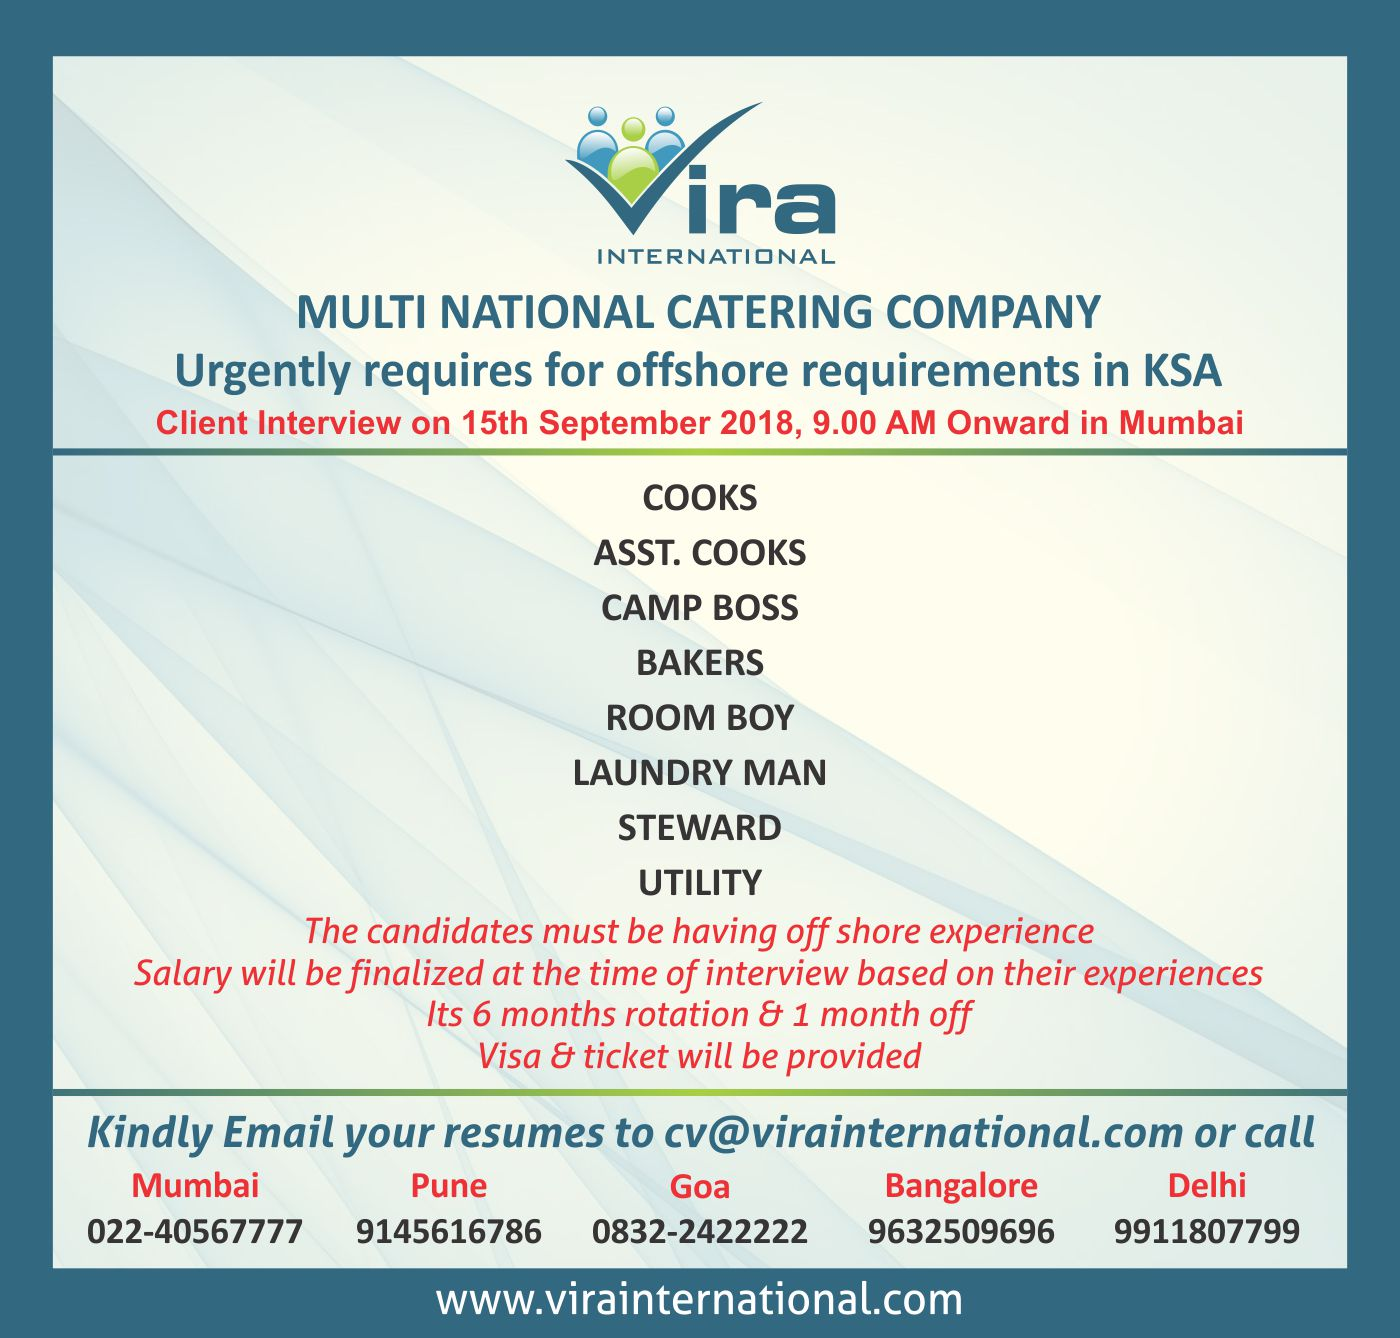 vira international on urgently requires for multi national catering company offshore Resume Catering Camp Boss Resume